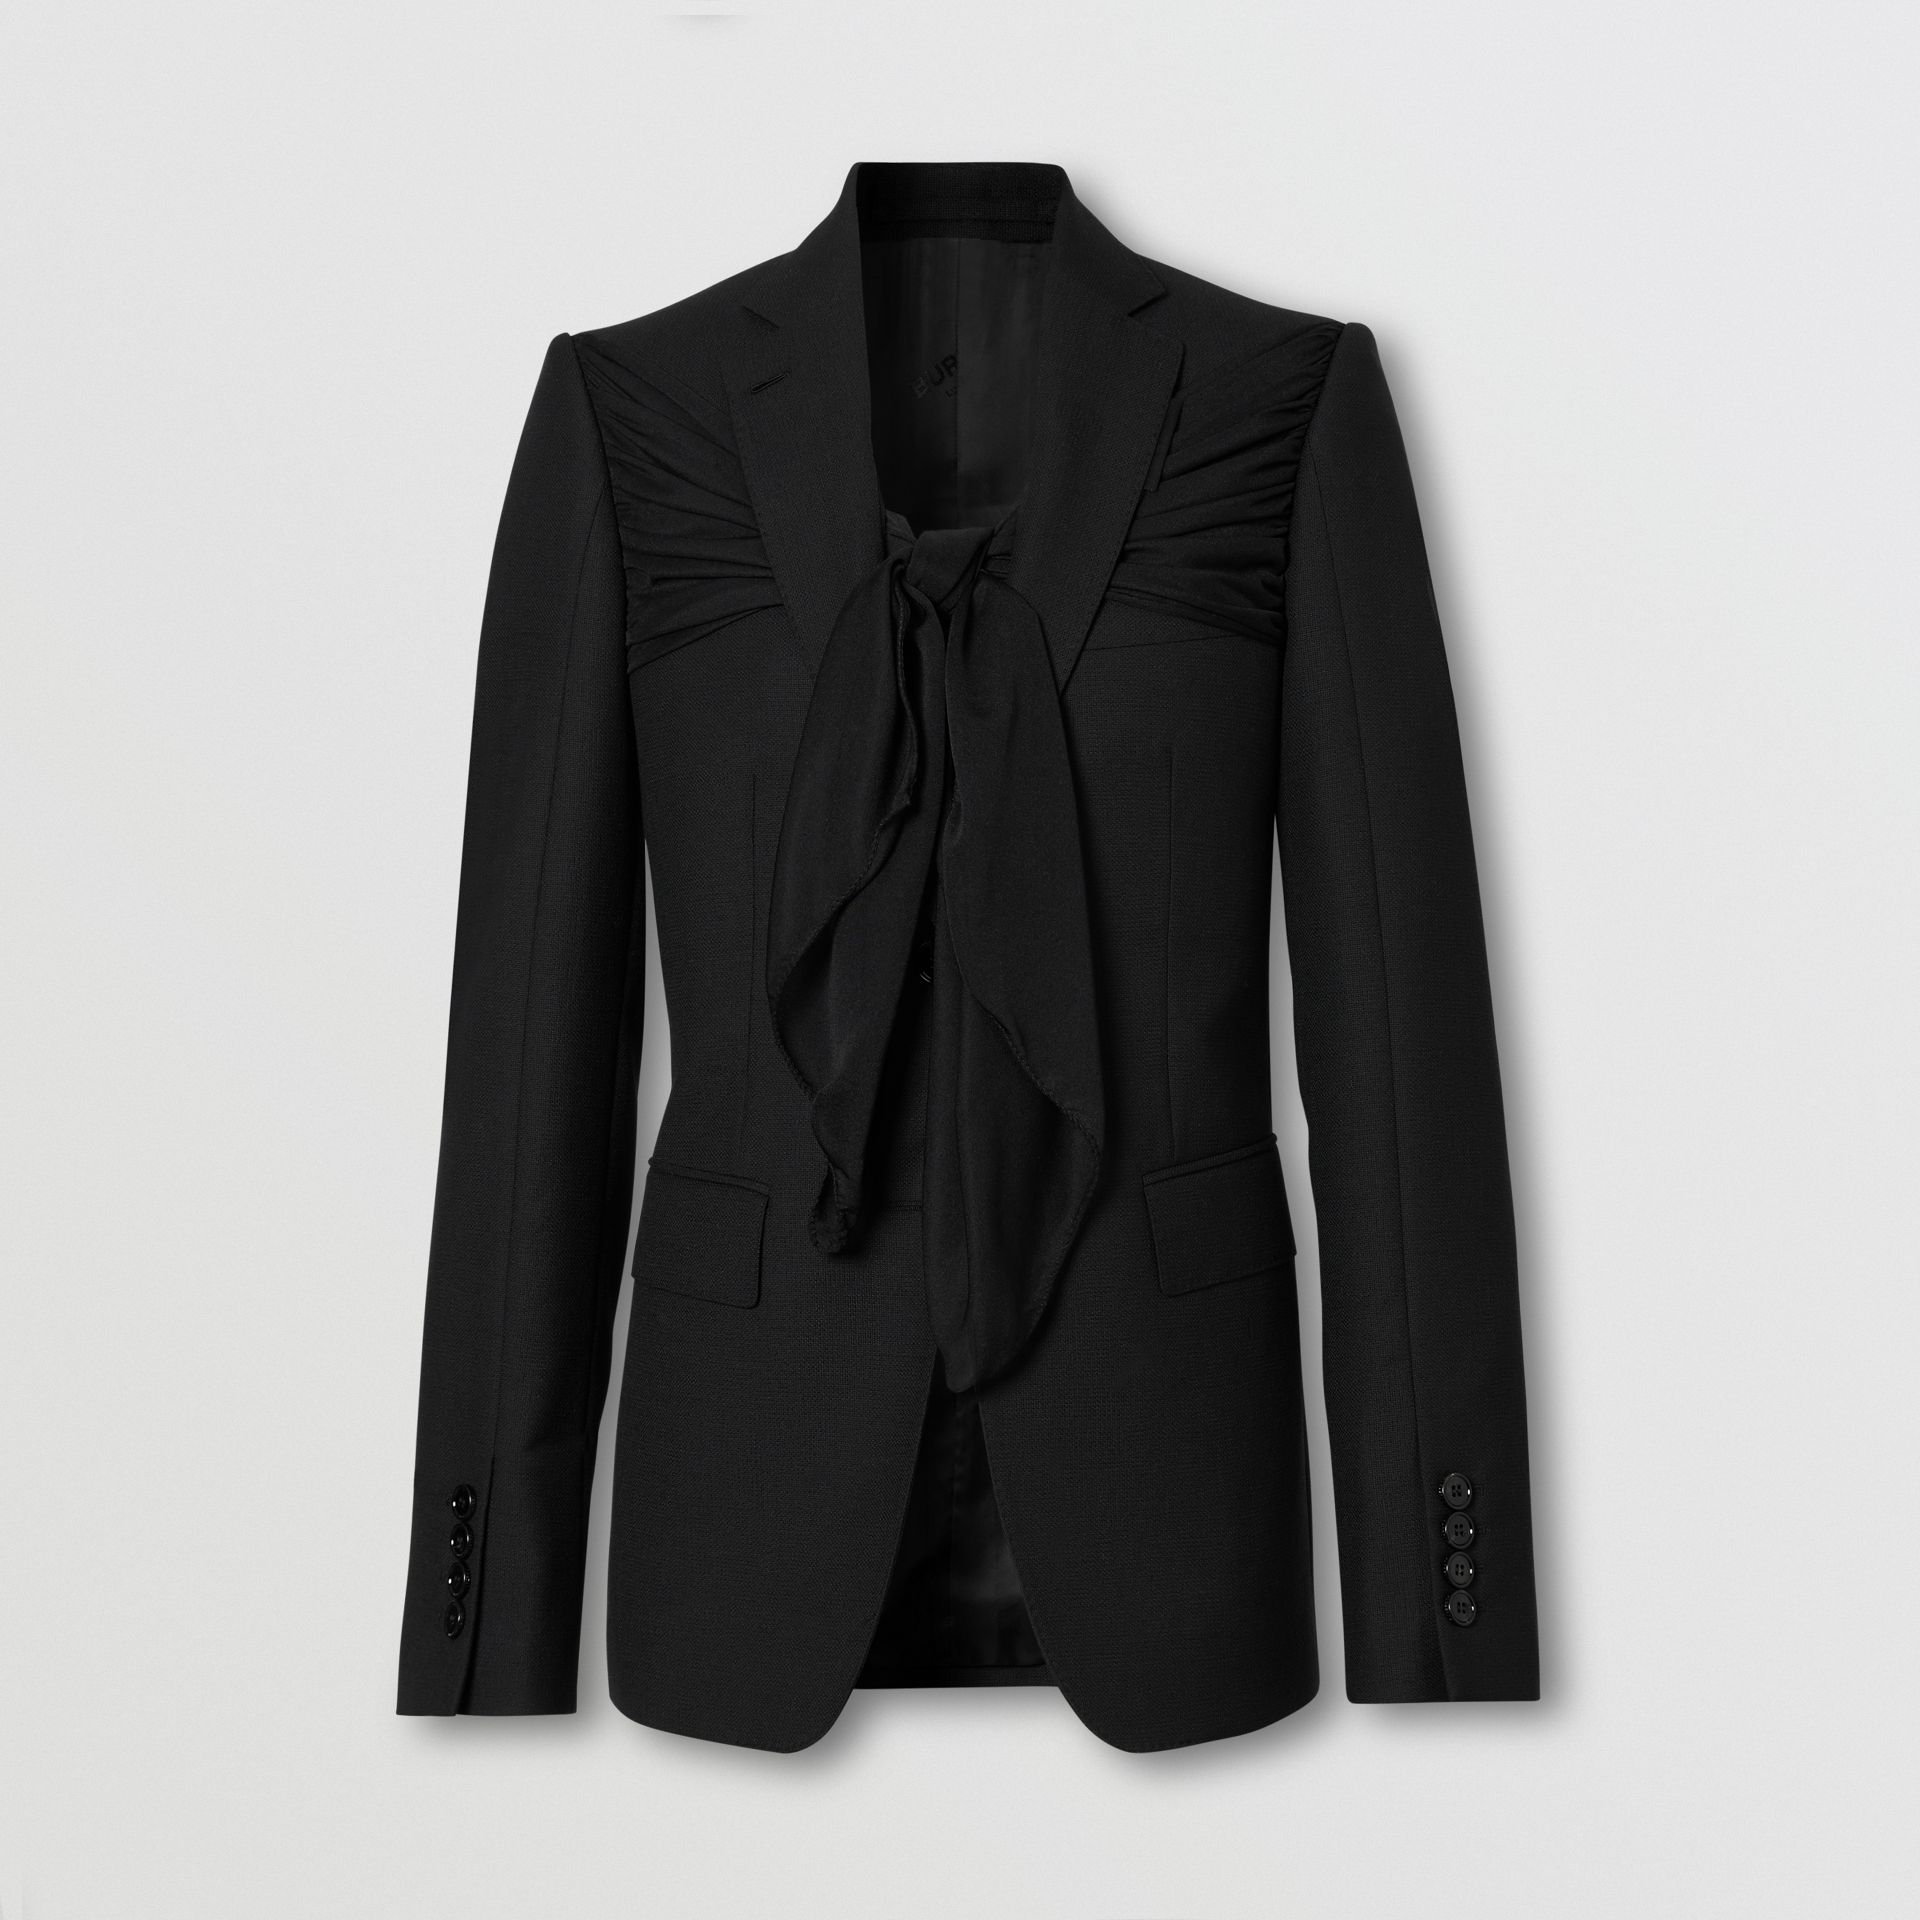 Jersey Sash Detail Wool Tailored Jacket in Black - Women | Burberry - gallery image 3